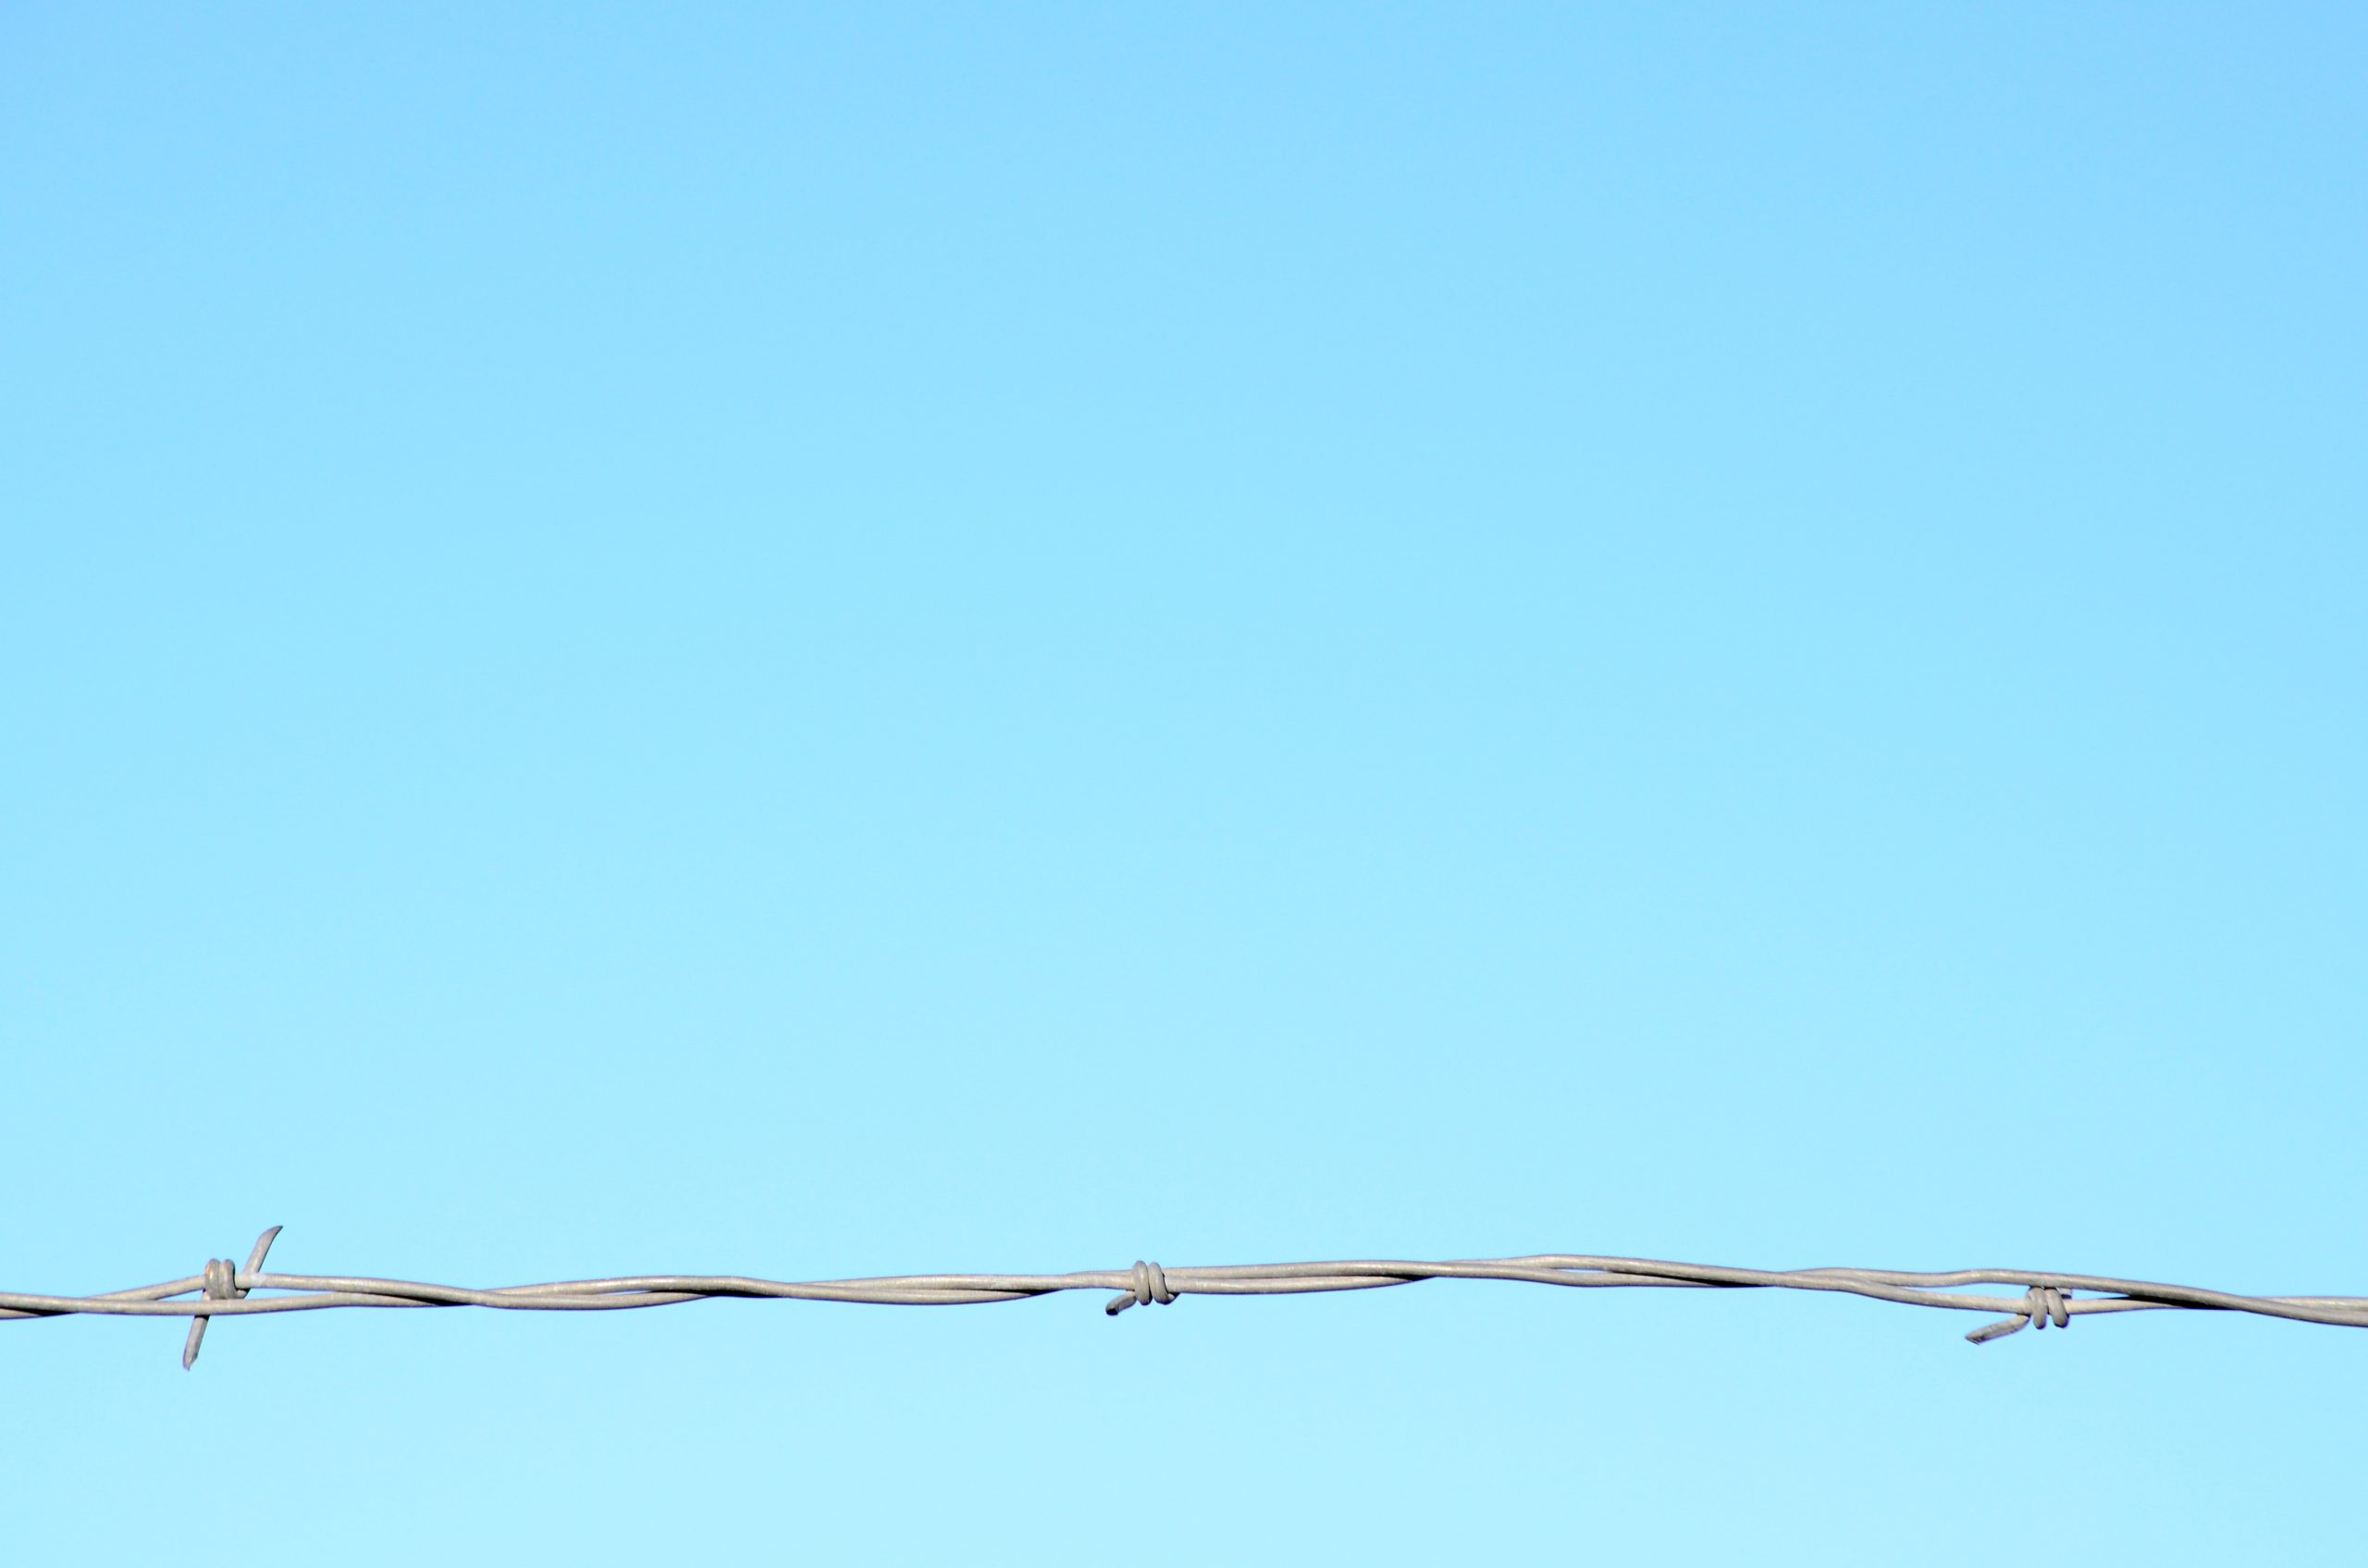 Close-up of razor wire against a clear blue sky